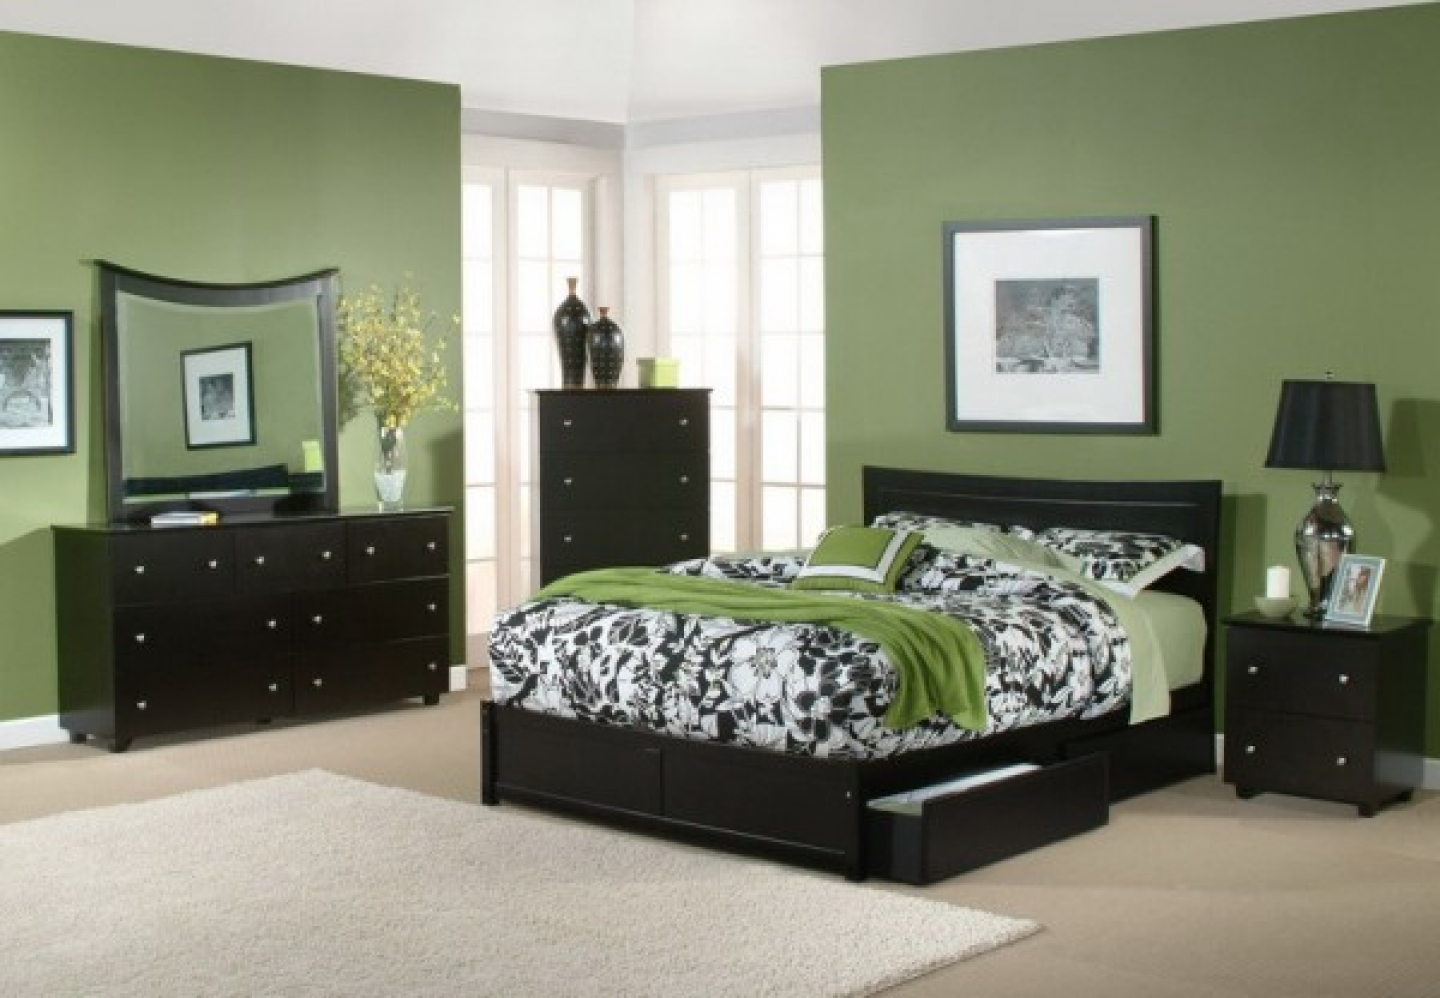 Green and Pattern Color Asian Bedroom Design